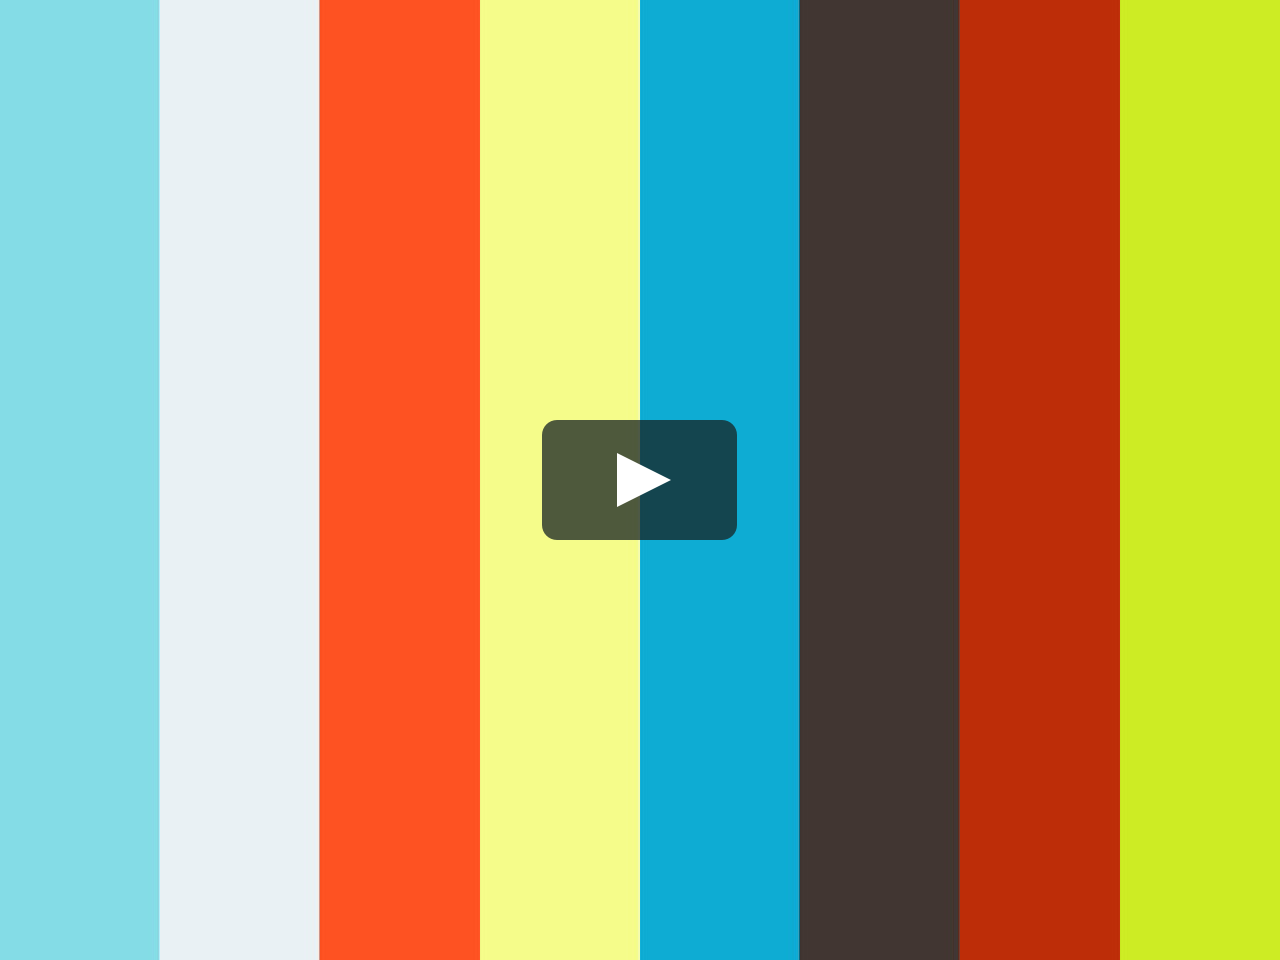 Mitch Reeder Austin High Lacrosse Class 2012 On Vimeo